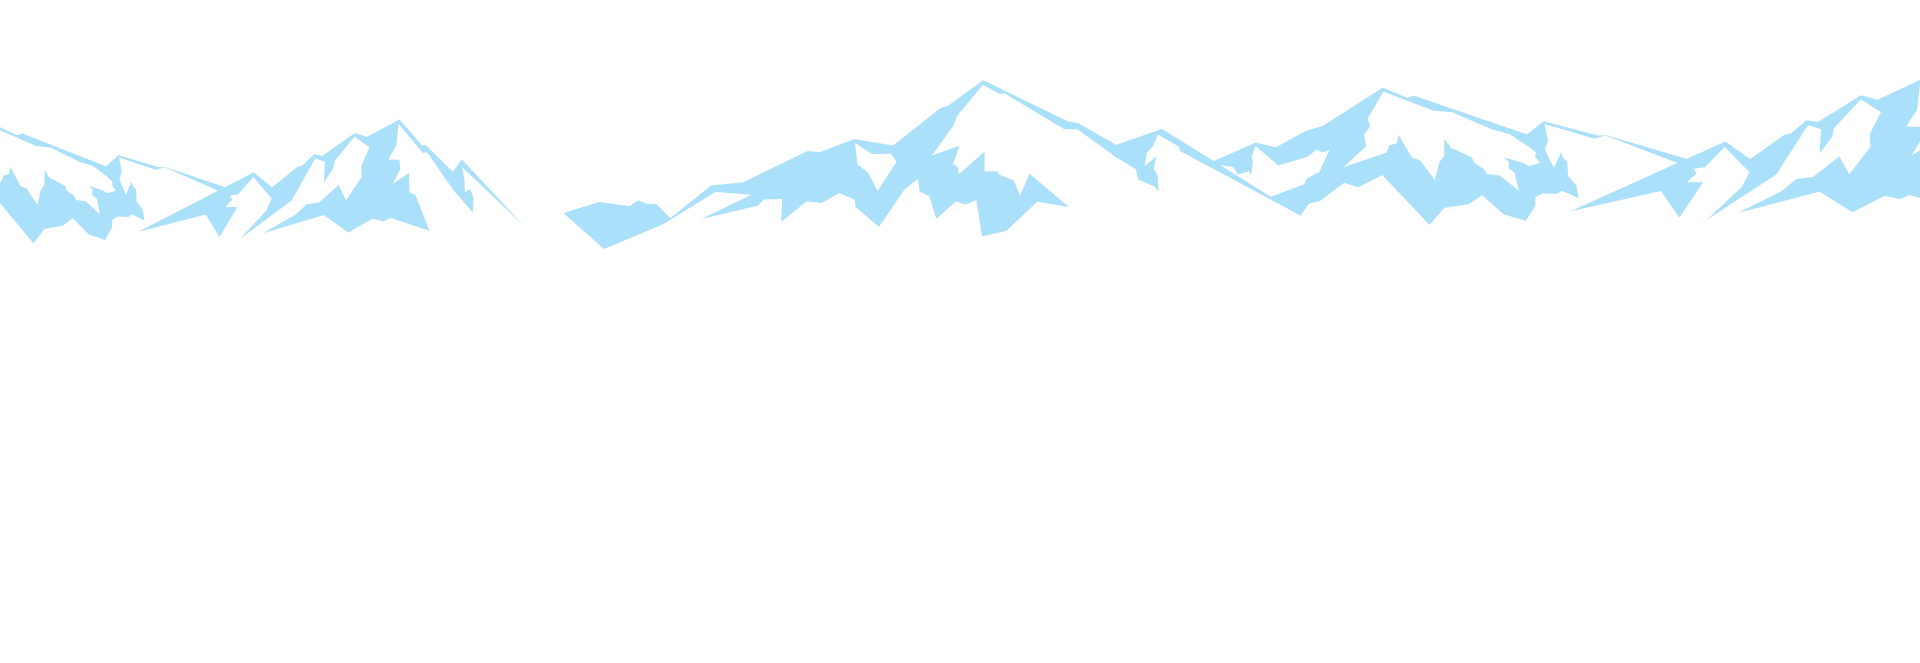 Blue colored animated mountains